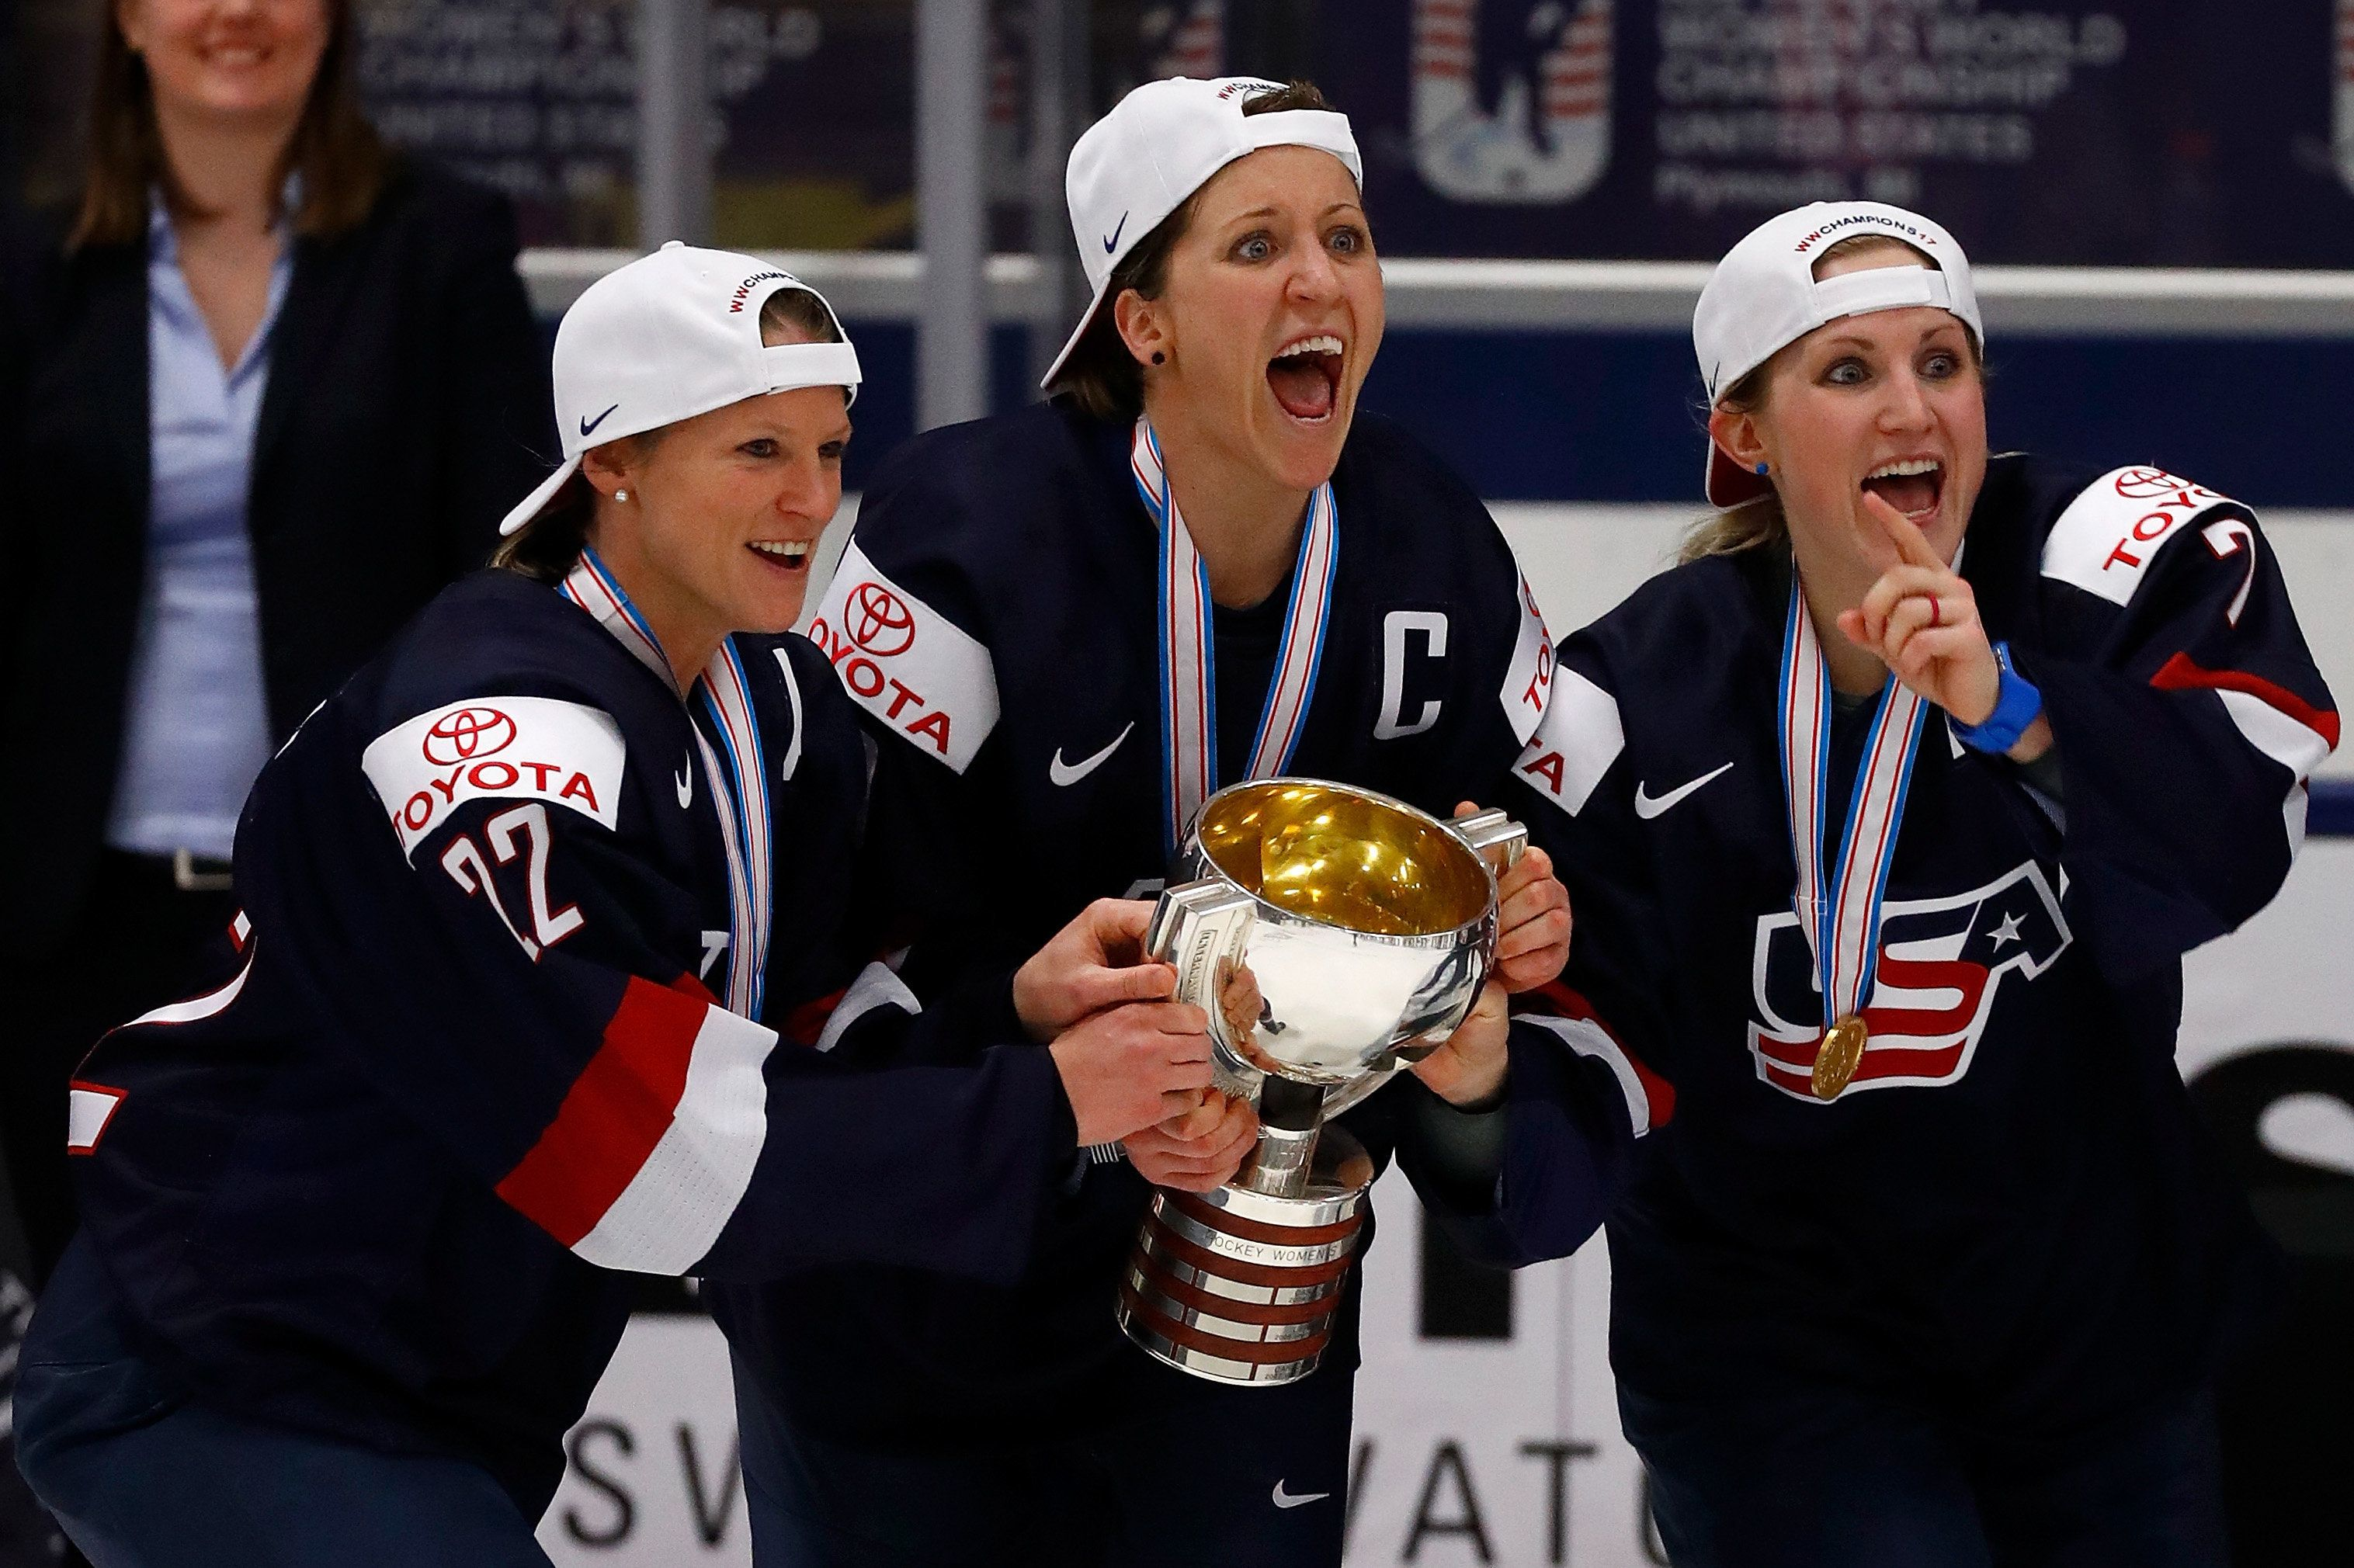 PLYMOUTH, MI - APRIL 07: Kacey Bellamy #22, Meghan Duggan #10 and Monique Lamoureux #7 of the United States react after receiving the championship trophy for beating Canada 3-2 in overtime in the gold medal game at the 2017 IIHF Woman's World Championships at USA Hockey Arena on April 7, 2017 in Plymouth, Michigan. (Photo by Gregory Shamus/Getty Images)